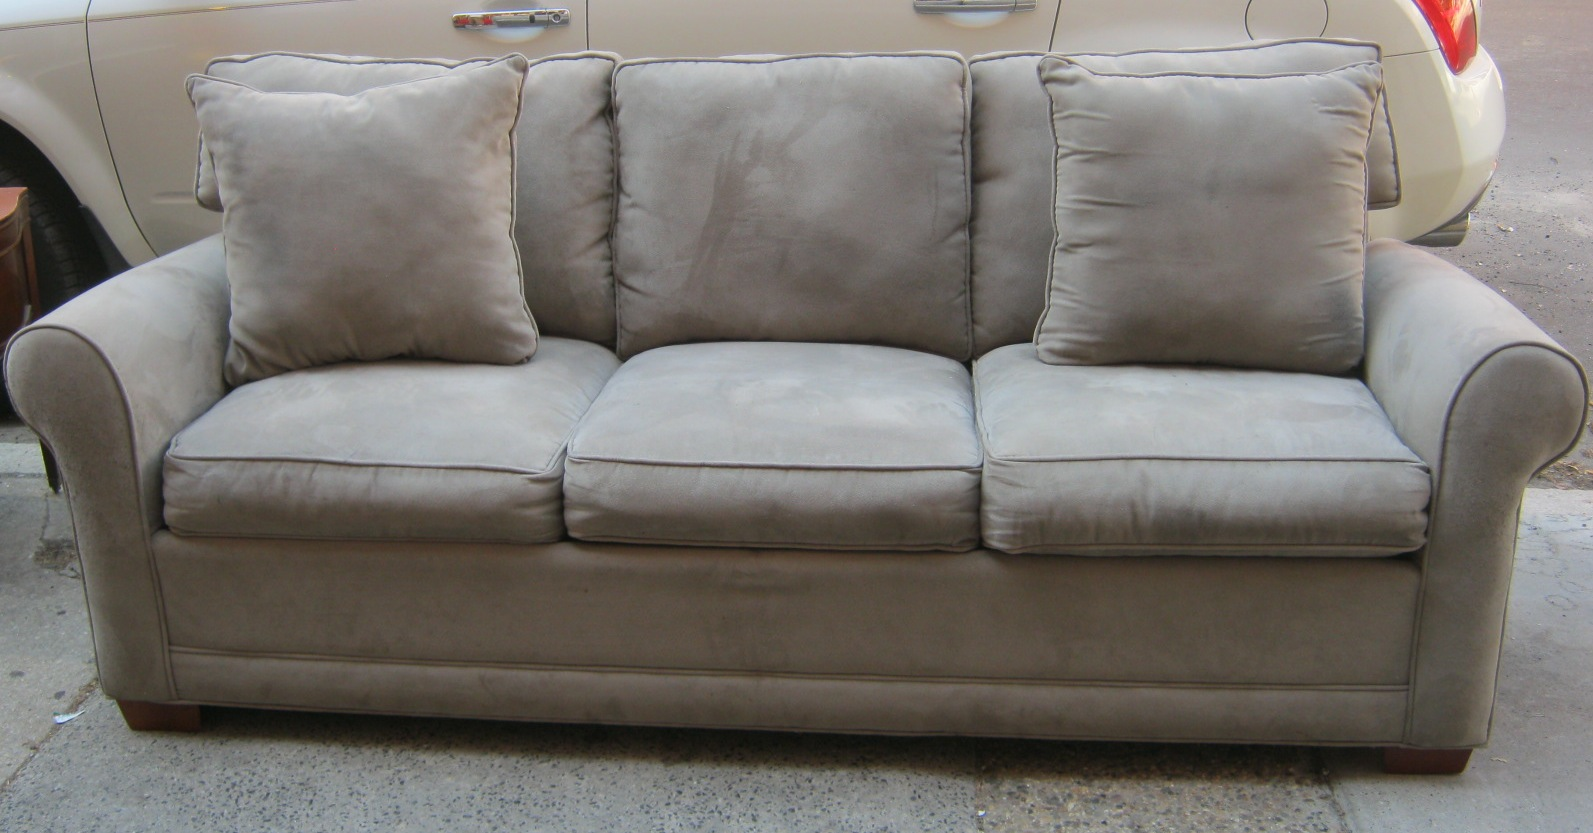 uhuru furniture collectibles grey microfiber sofa bed sold